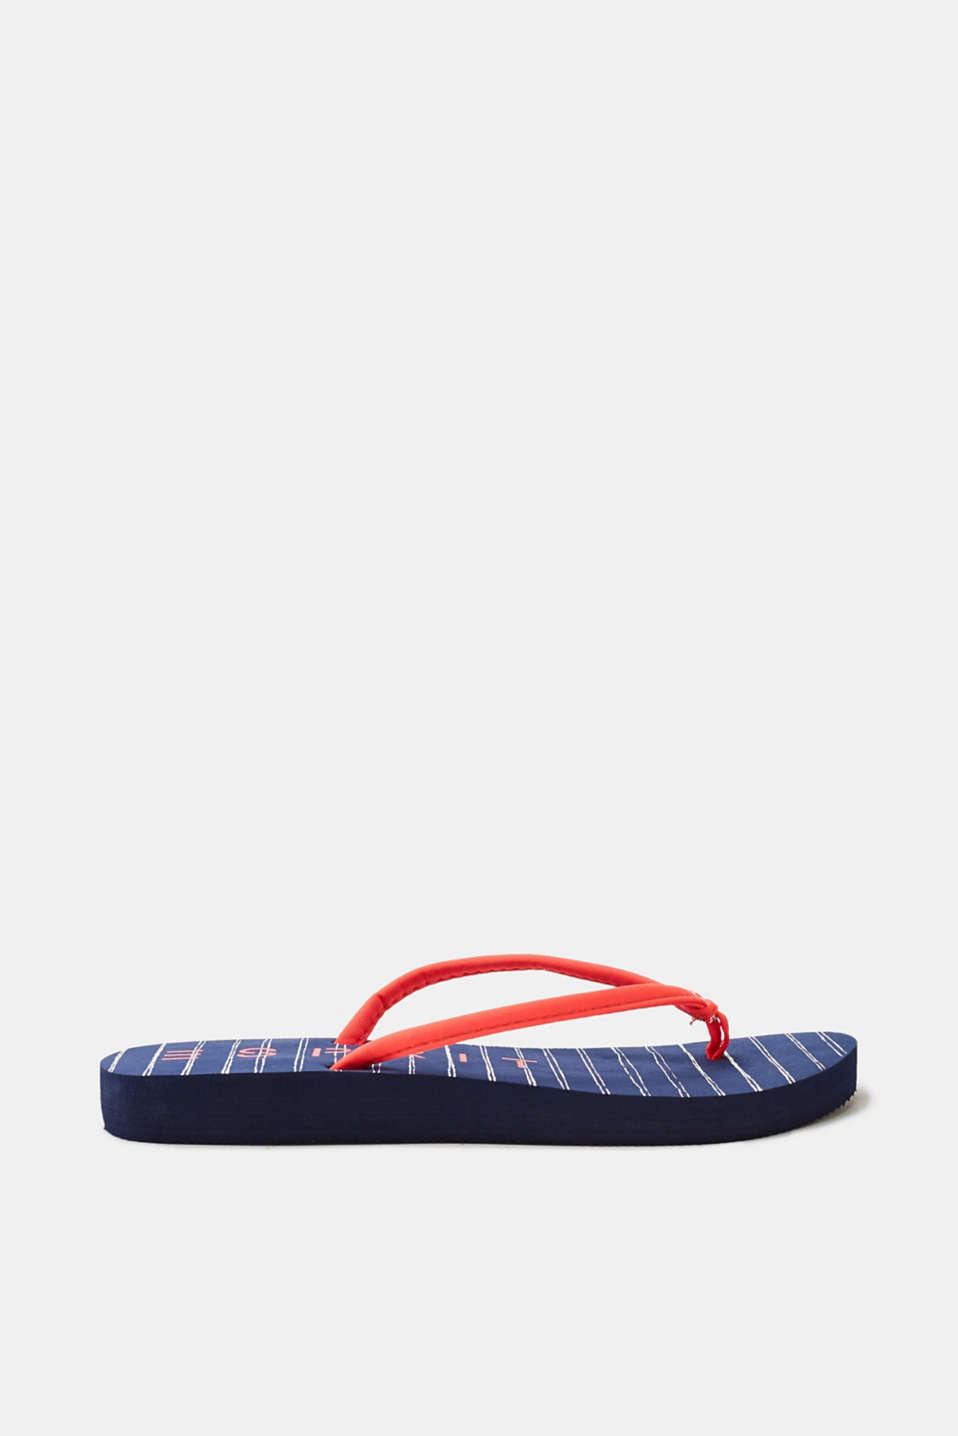 Good for walking on the beach: ultra lightweight thong sandals with a nautical striped insole!